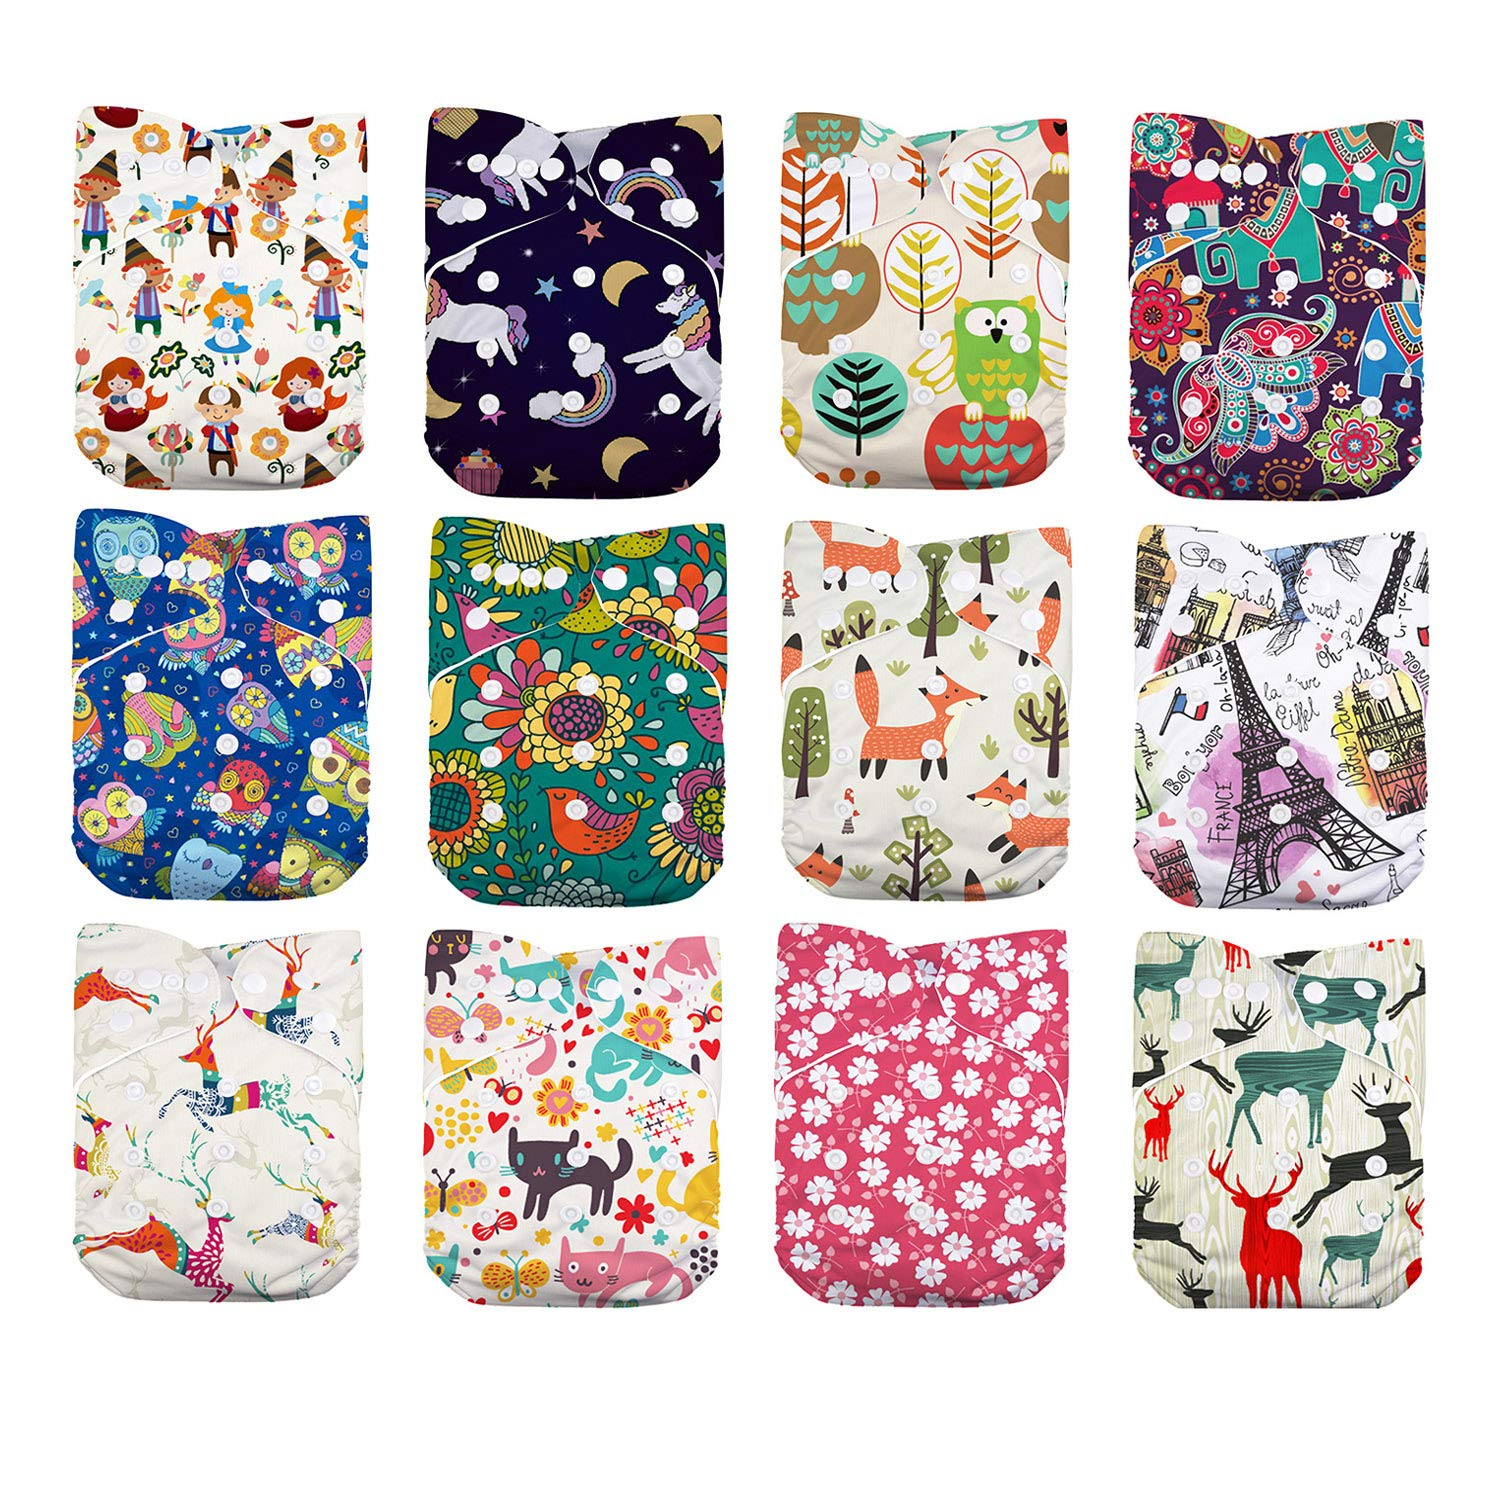 LilBit Baby Cloth Diapers,One Size Adjustable Reusable Pocket Cloth Diaper 12pcs Diapers + 12pcs Charcoal Bamboo Inserts+1 Wet Bag, (color4)